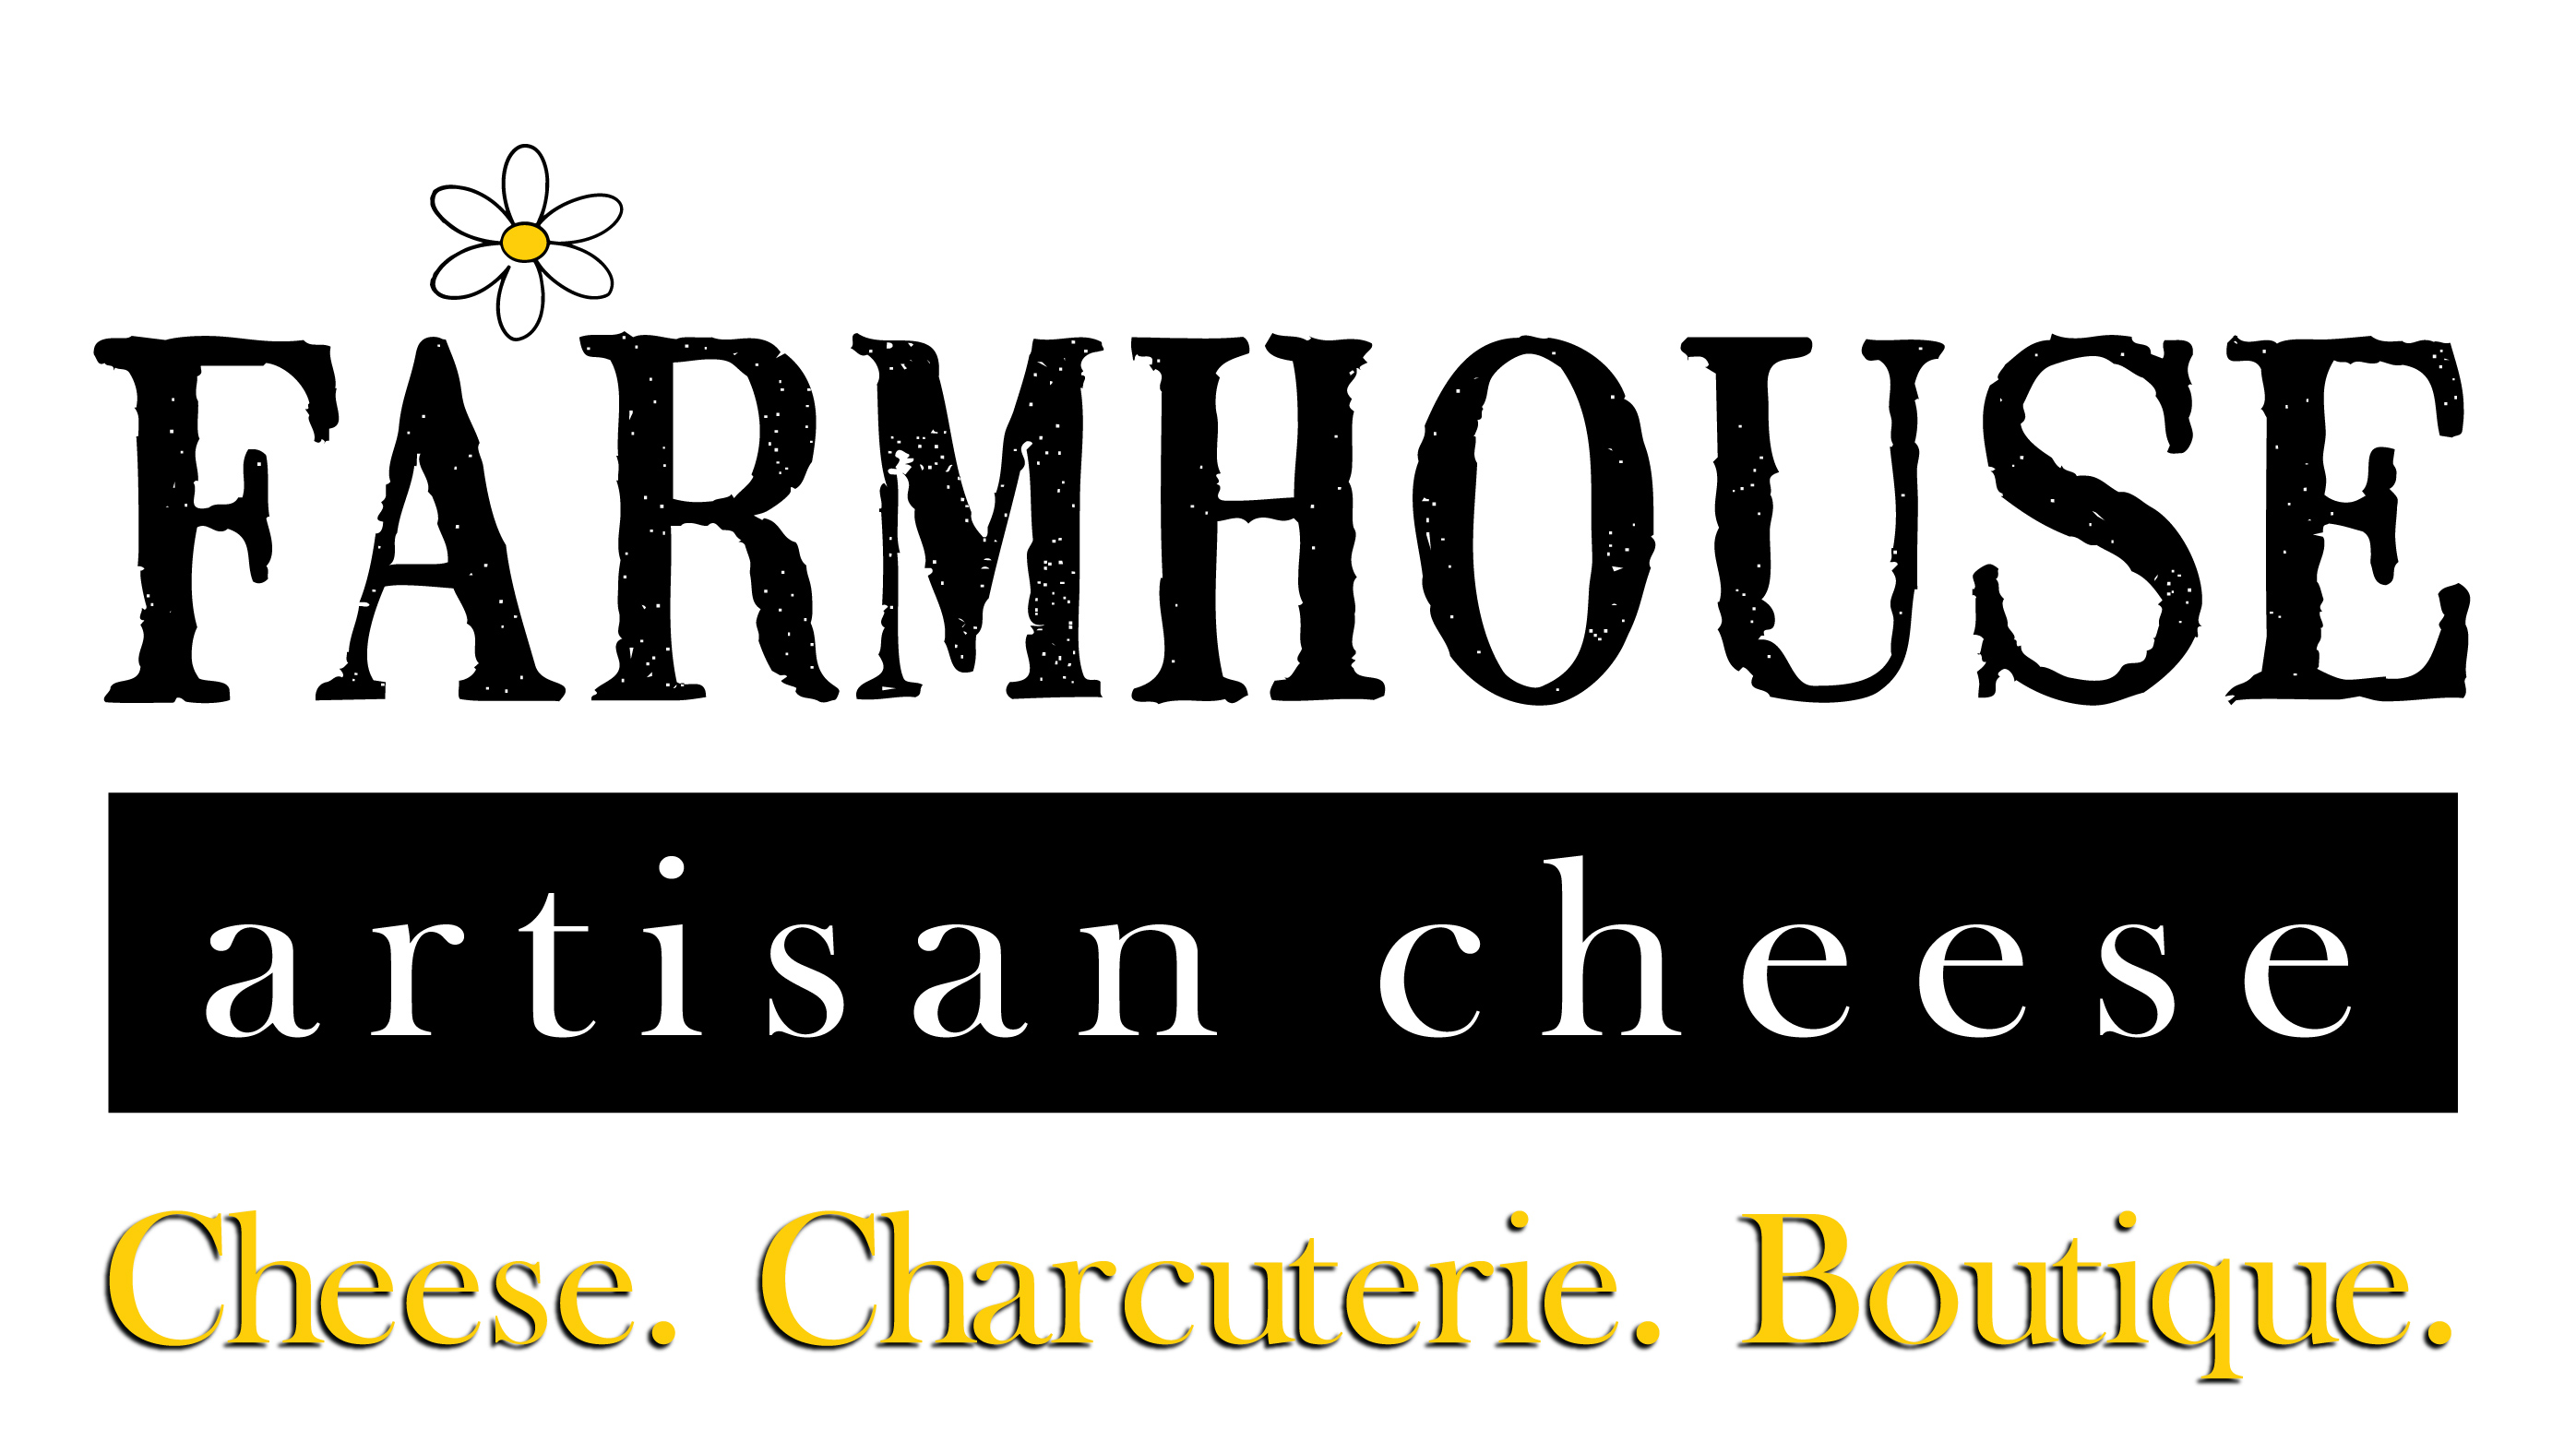 Farmhouse Artisan Cheese logo